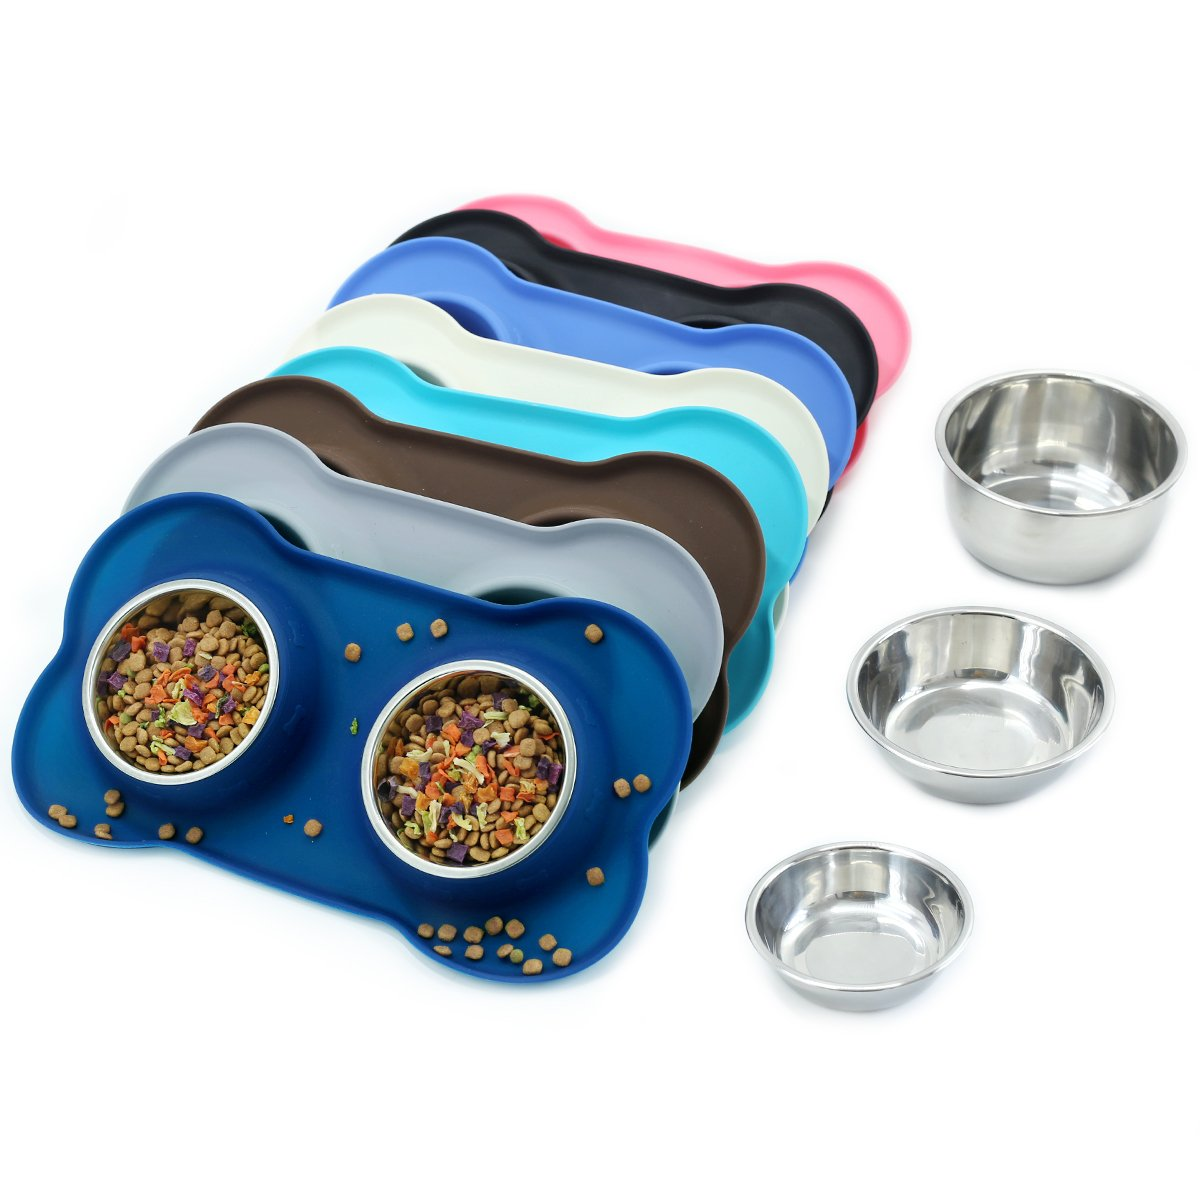 Navy bluee M(for Small Dogs) Navy bluee M(for Small Dogs) Vivaglory Dog Bowls Stainless Steel Water and Food Bowl Pet Cat Feeder with Non Spill Skid Resistant Silicone Mat, Medium, Navy bluee